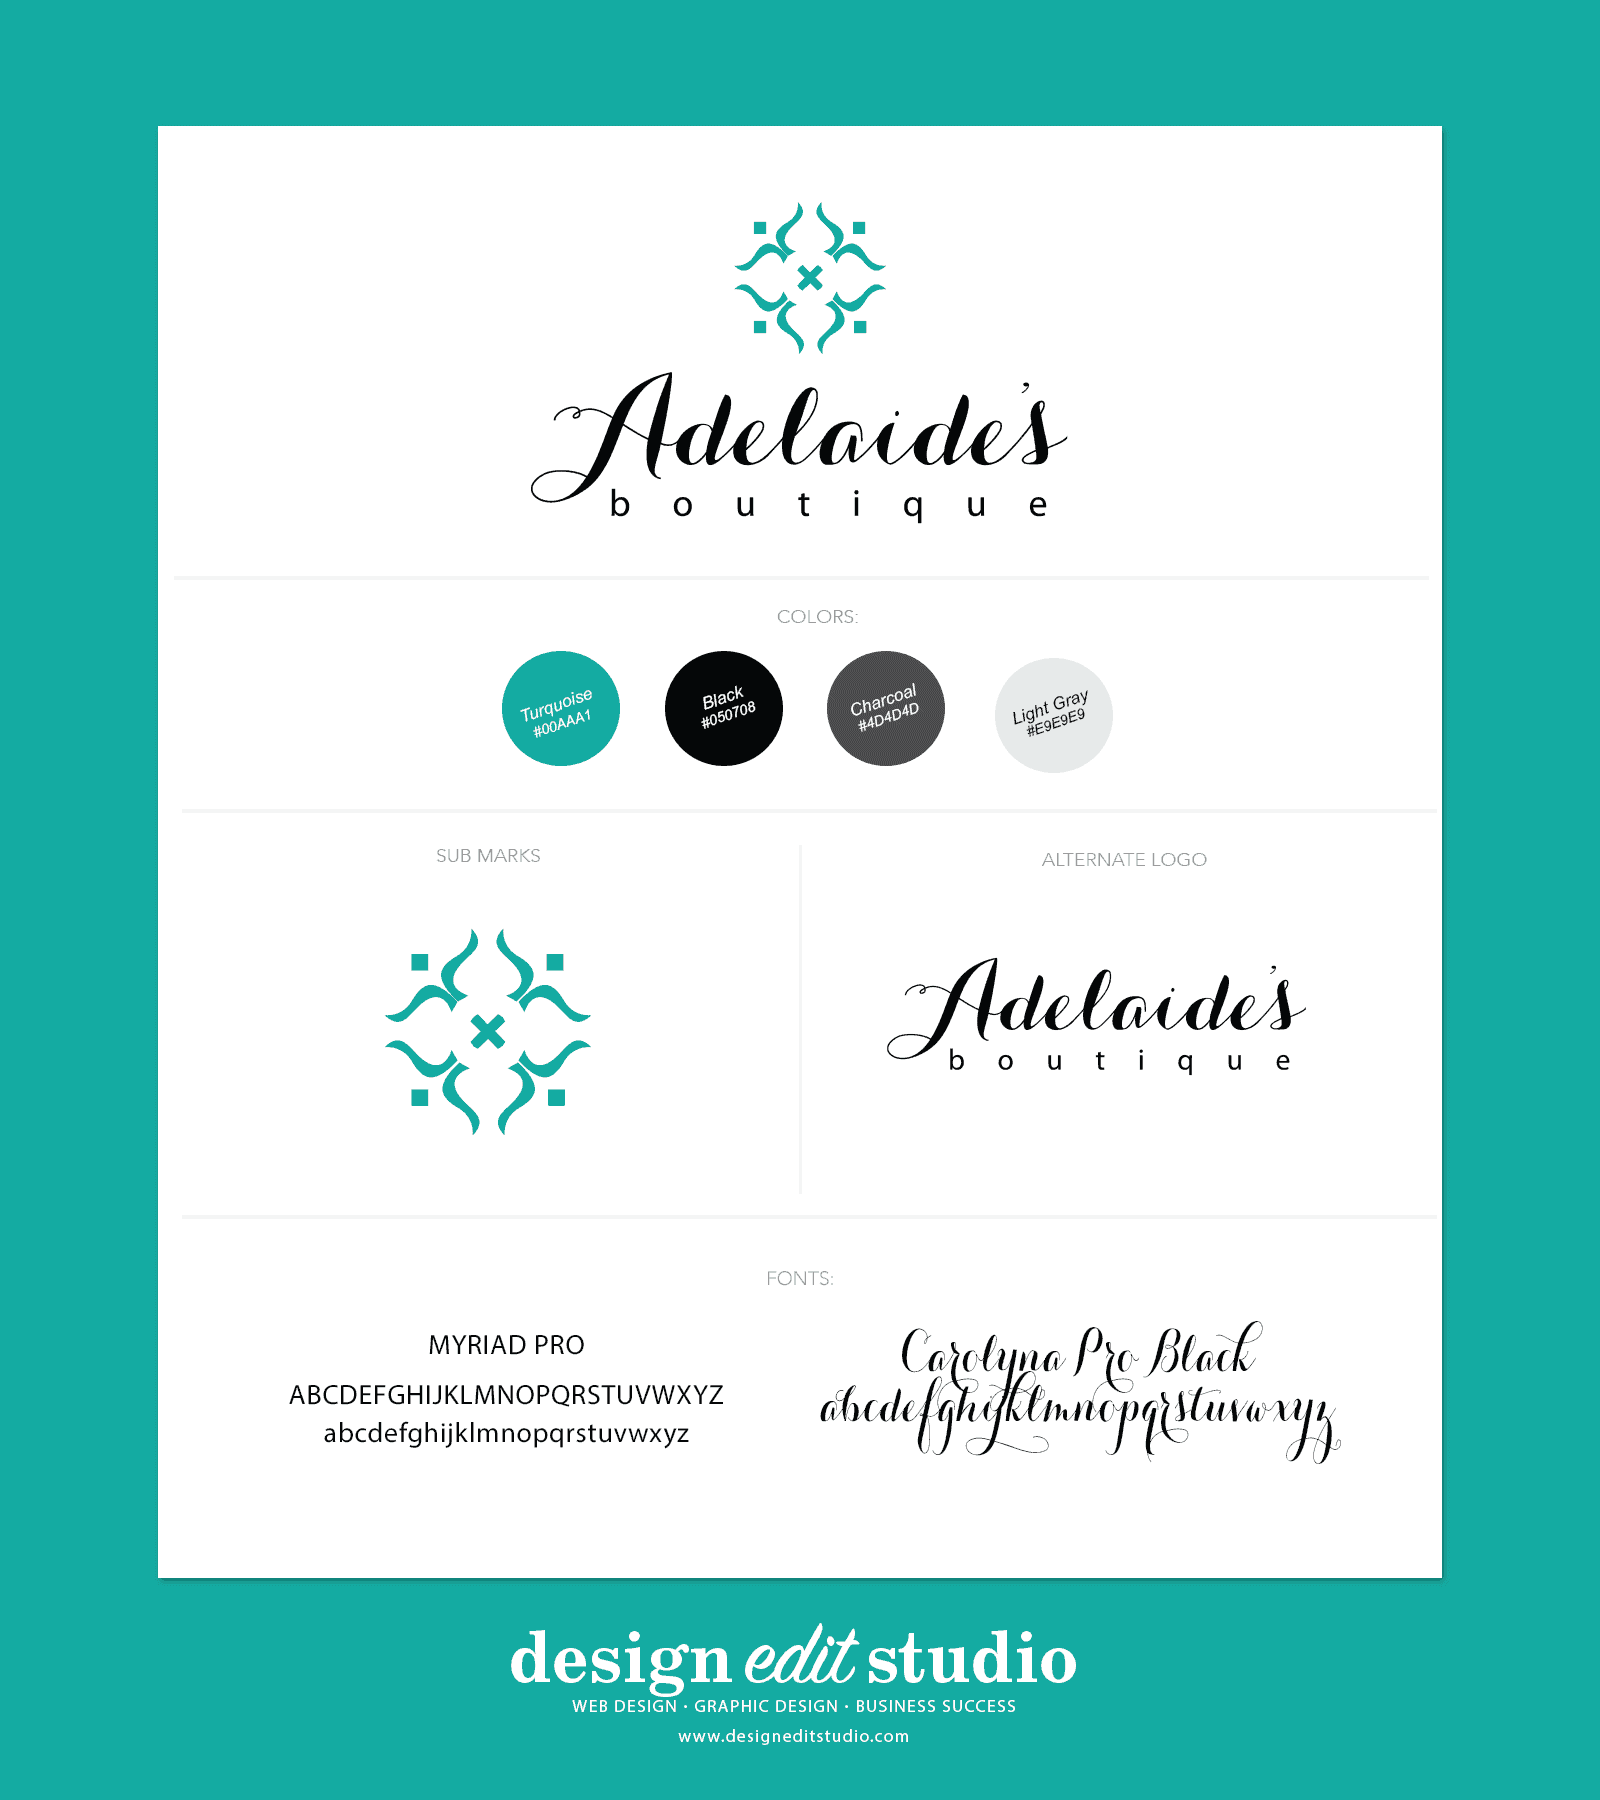 Adelaide's boutique brand board